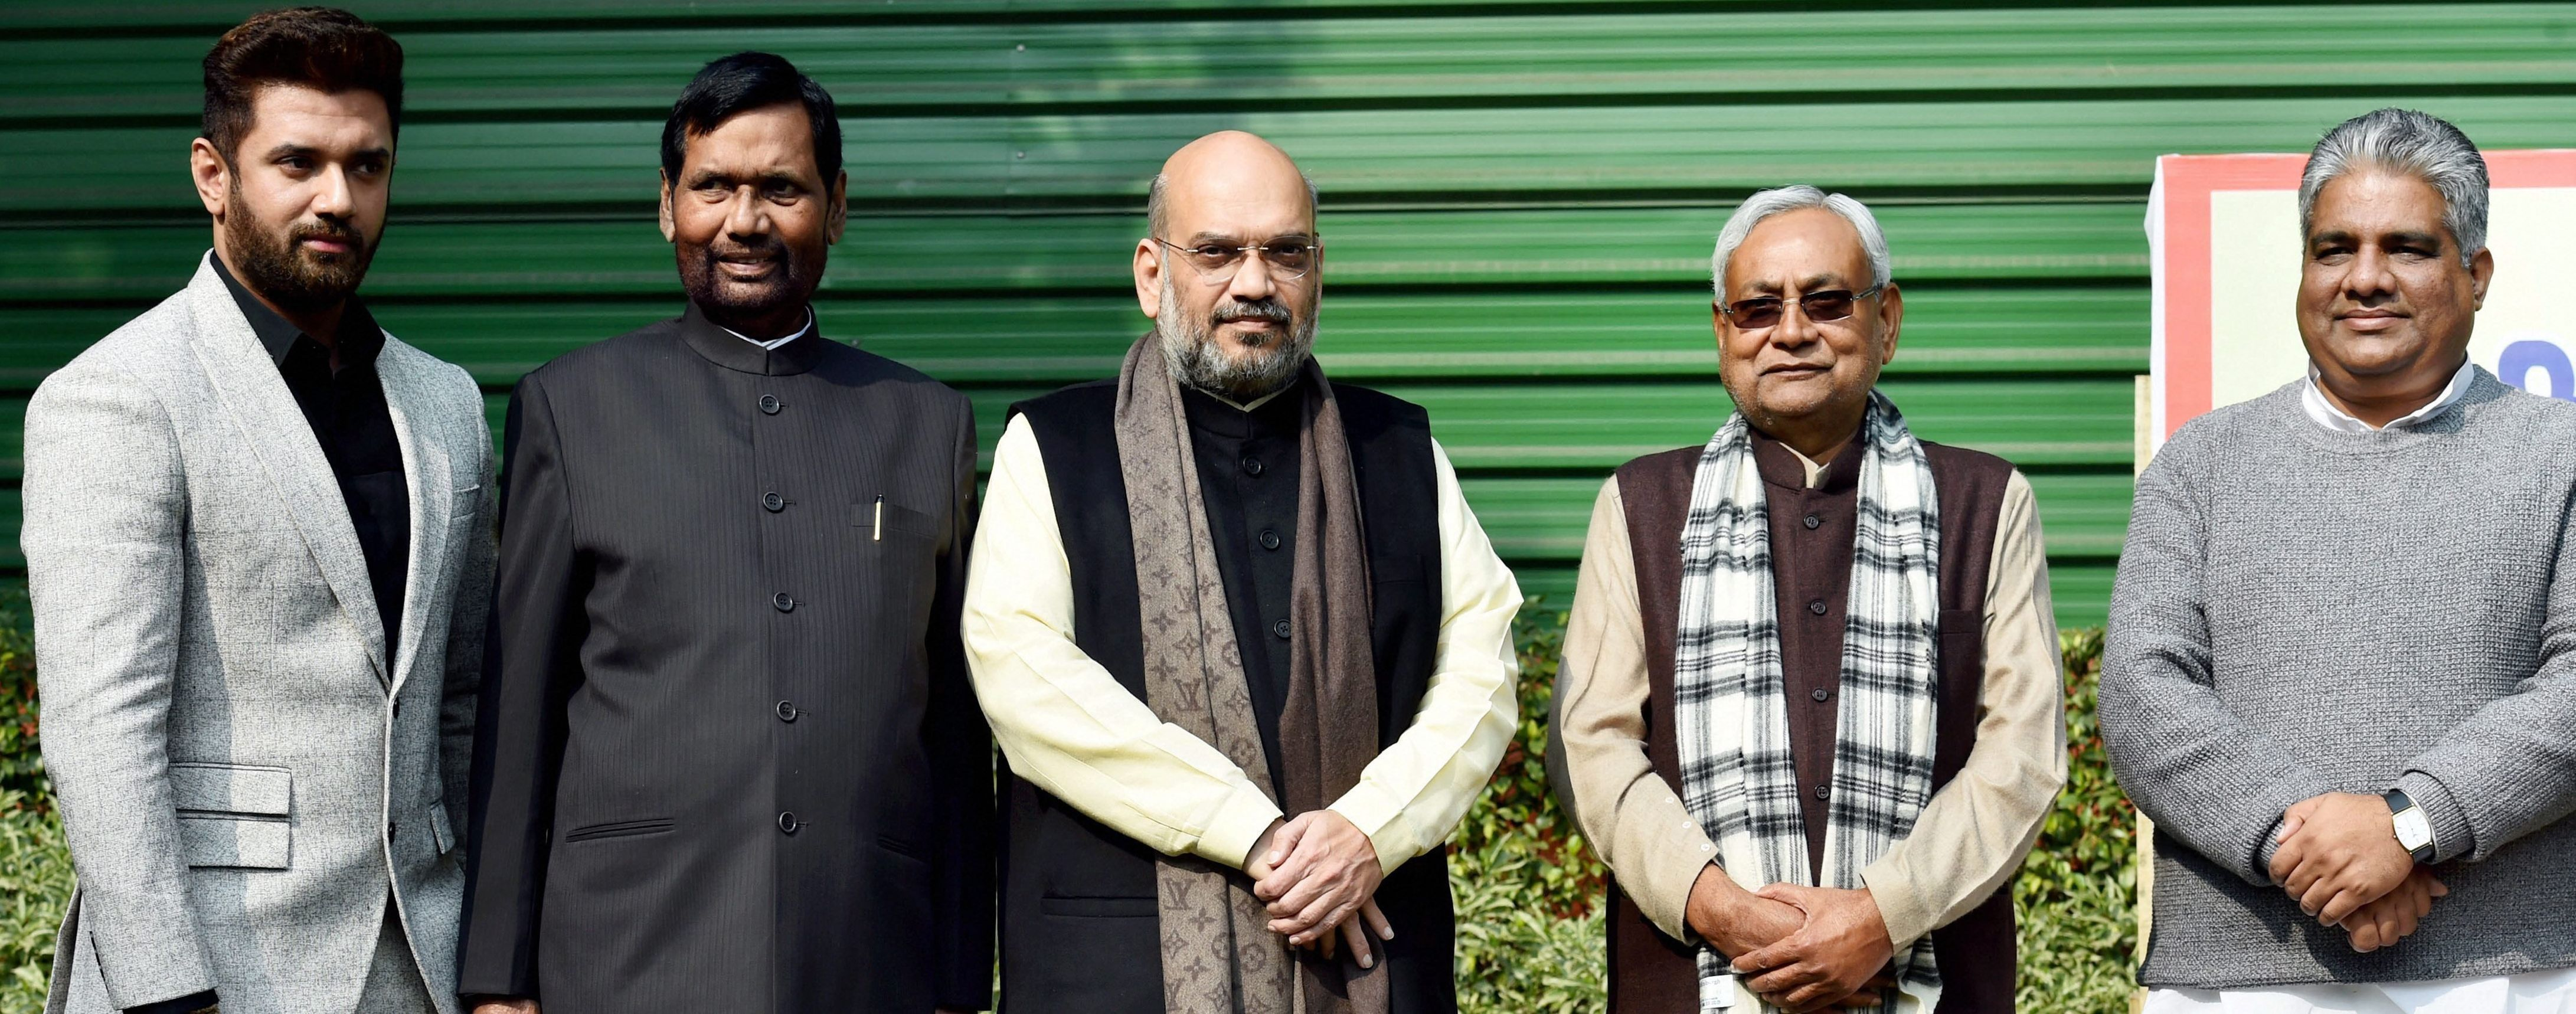 BJP President Amit Shah (centre) flanked by Bihar chief minister Nitish Kumar (second from right), and LJP president Ram Vilas Paswan (second from left). In the extreme left is Chirag Paswan. At the extreme right BJP leader Bhupendra Yadav in New Delhi on December 23. The BJP announced its Bihar alliance for the Lok Sabha elections after this meeting.